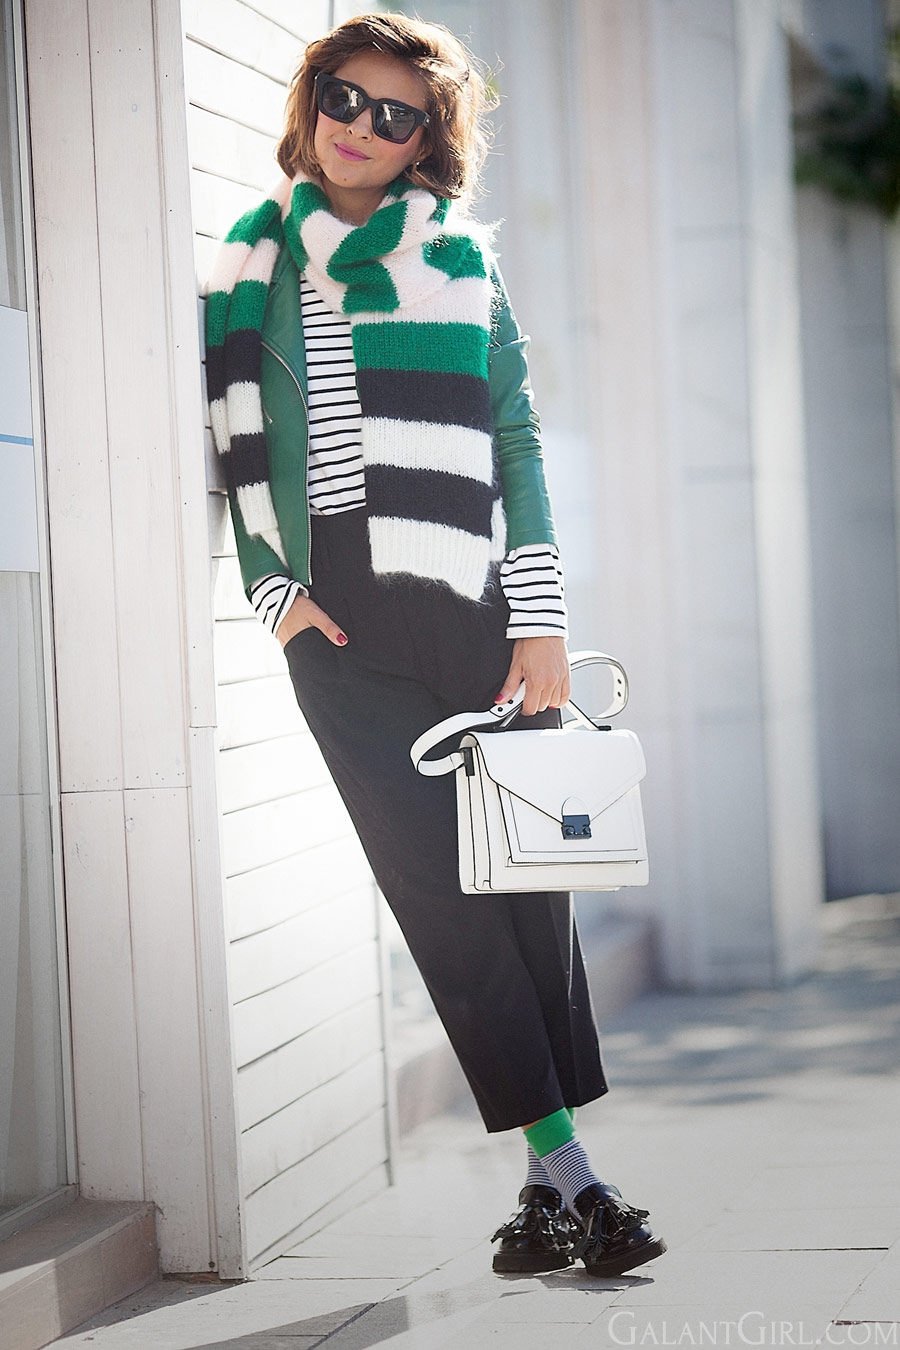 Mara Mara scarf, striped scarf, loeffler randall bag, MSGM loafers, green accents outfit, fall outfits,